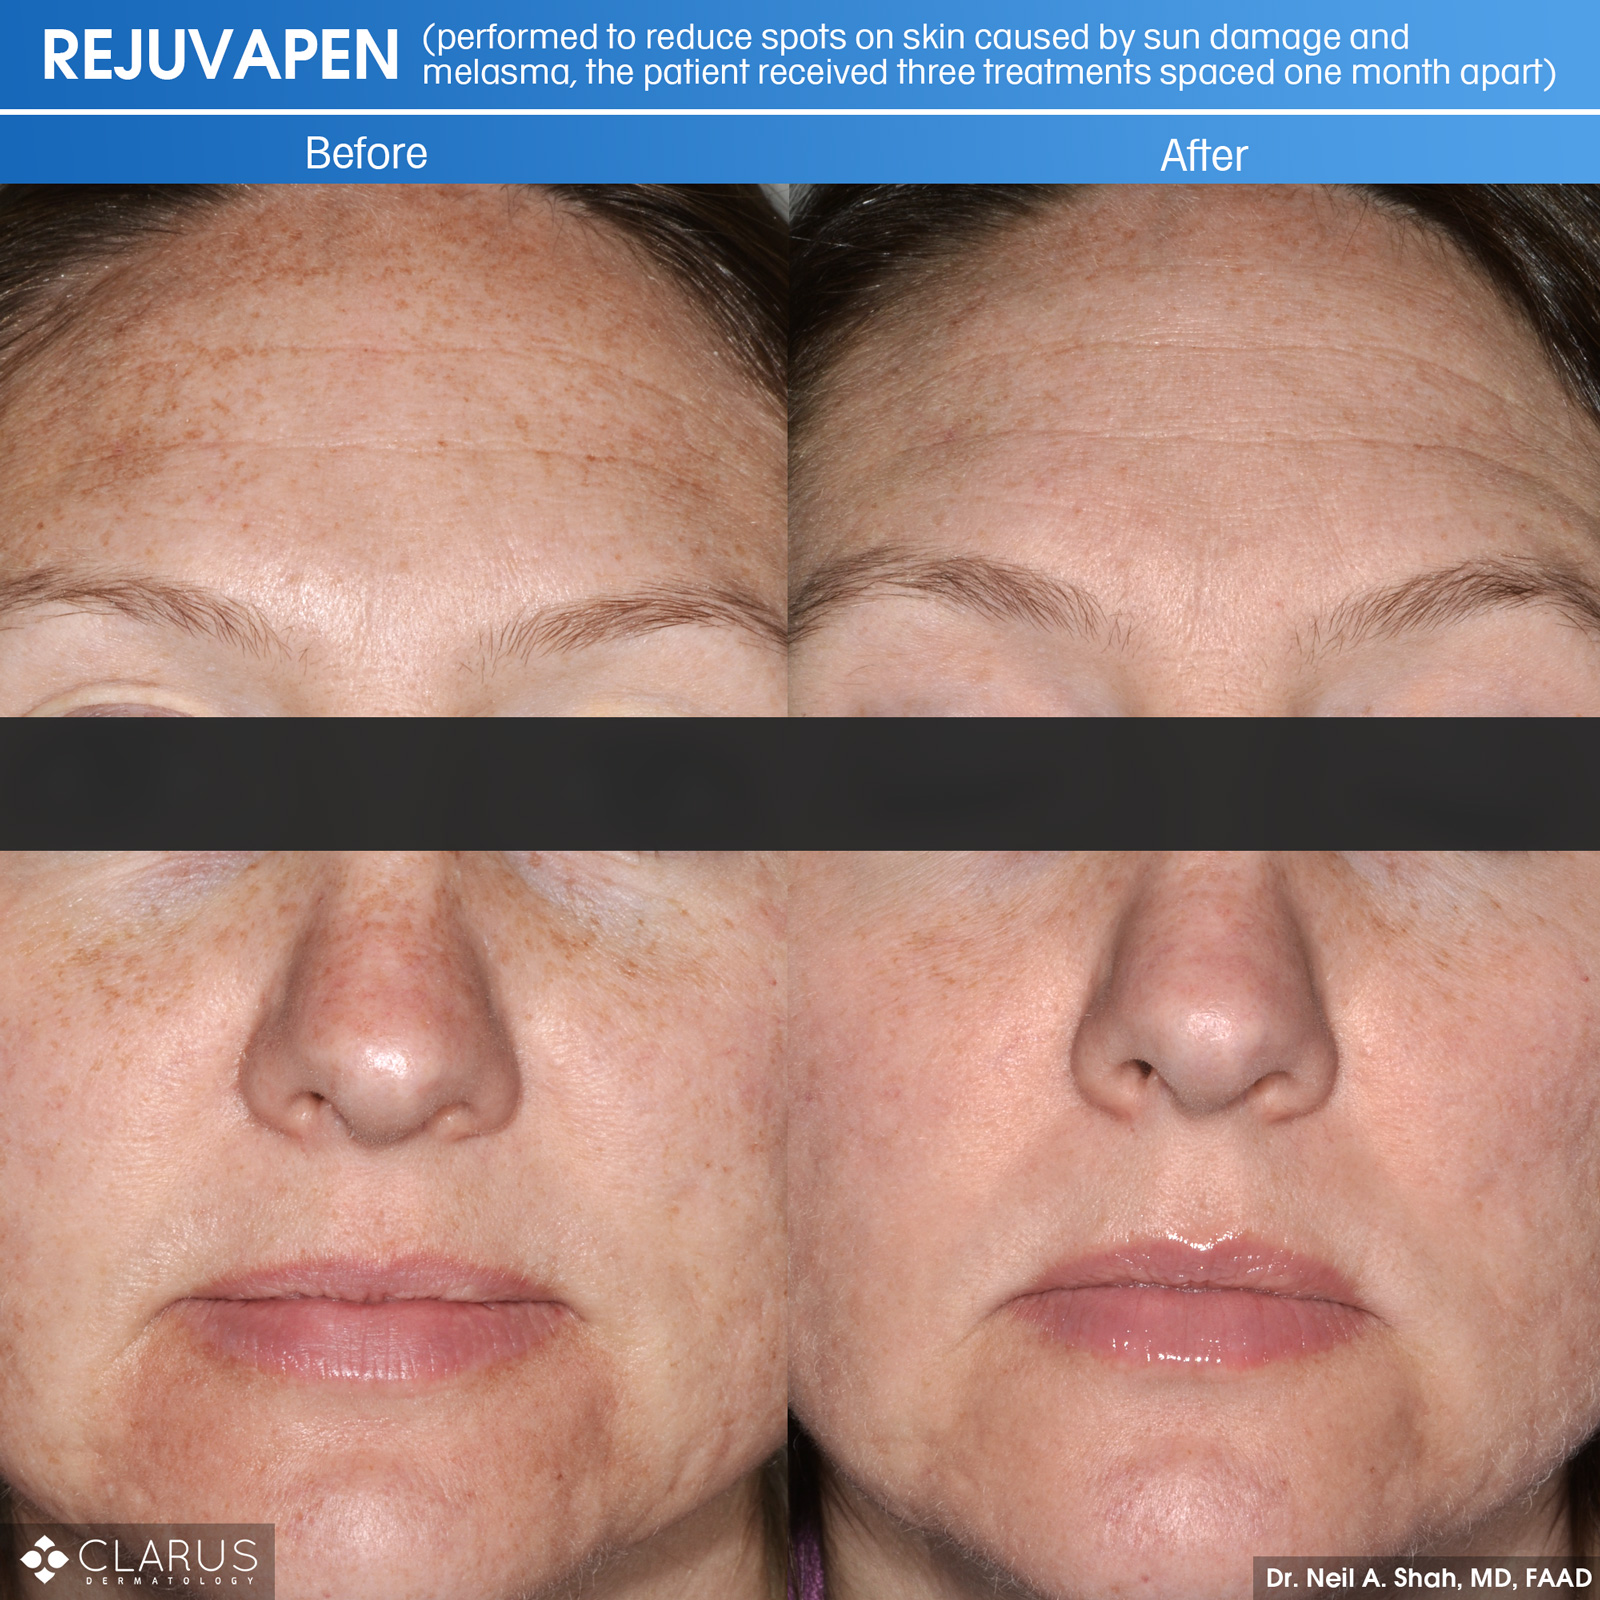 Rejuvapen is a microneedling treatment that we use at Clarus Dermatology for a variety of skin care issues - including ones related to sun damage and melasma (a common skin problem that causes brown and gray-brown patches on the face).